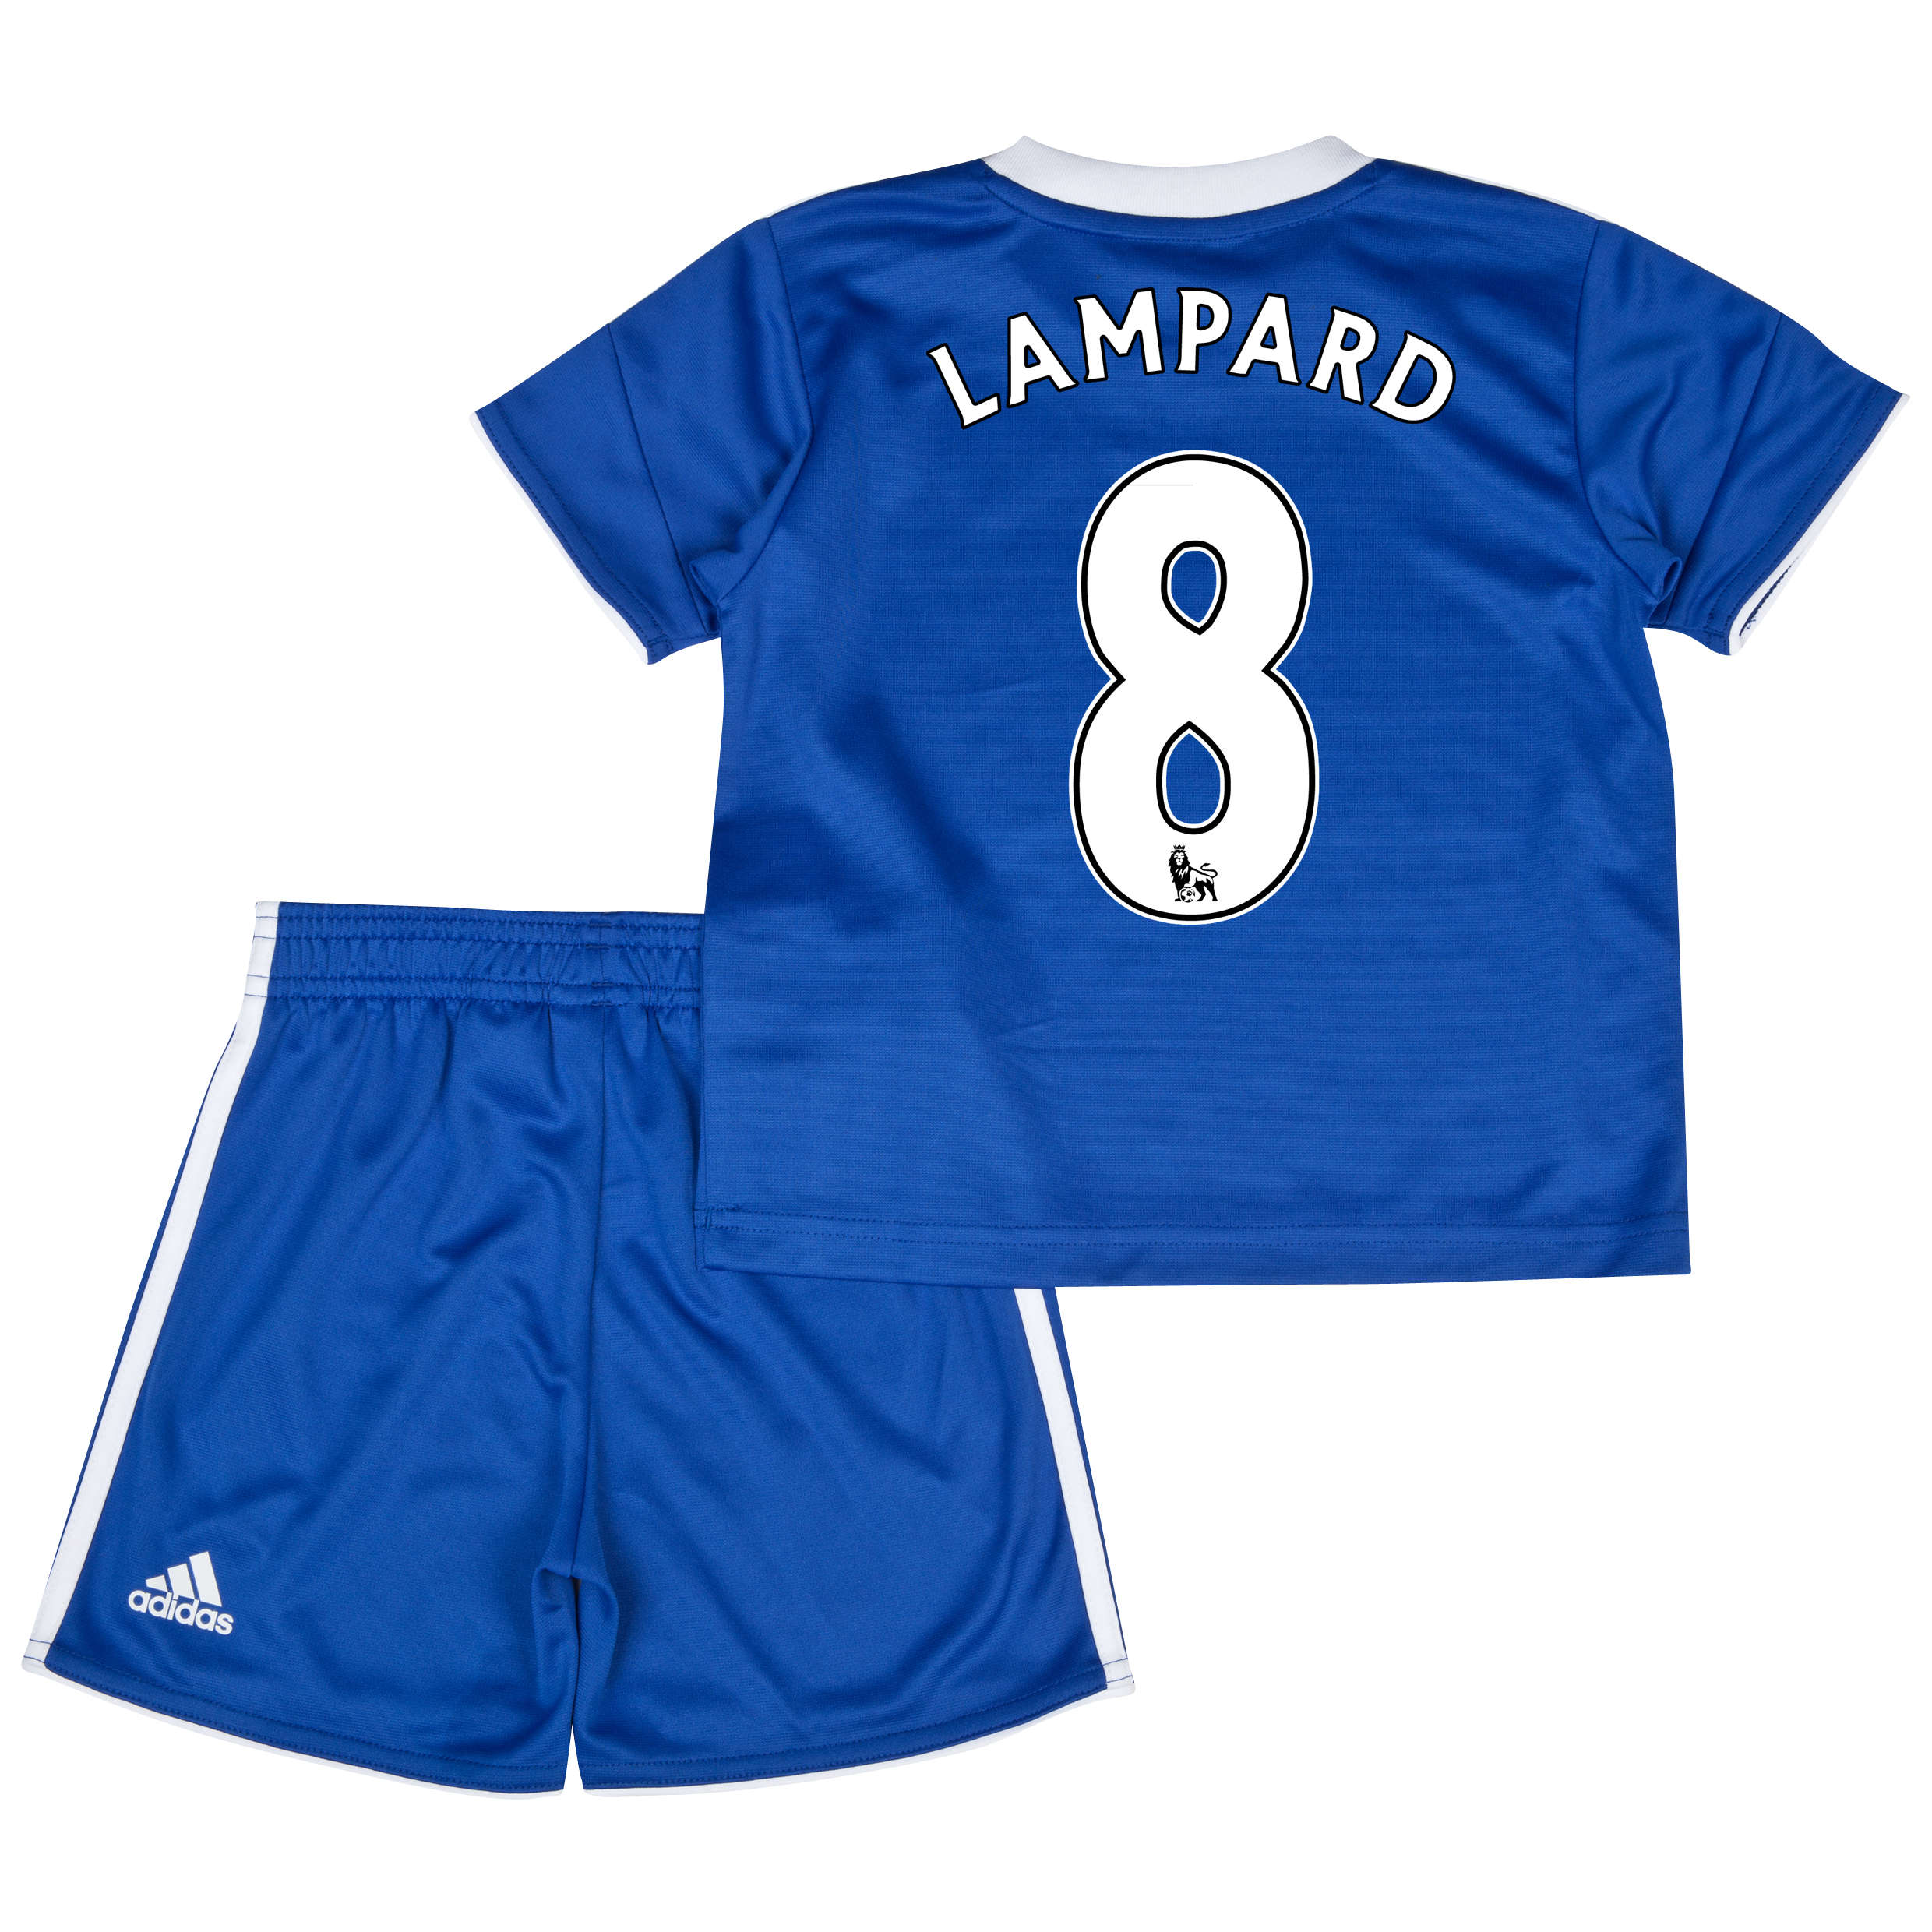 Chelsea Home Mini Kit 2013/14 with Lampard 8 printing